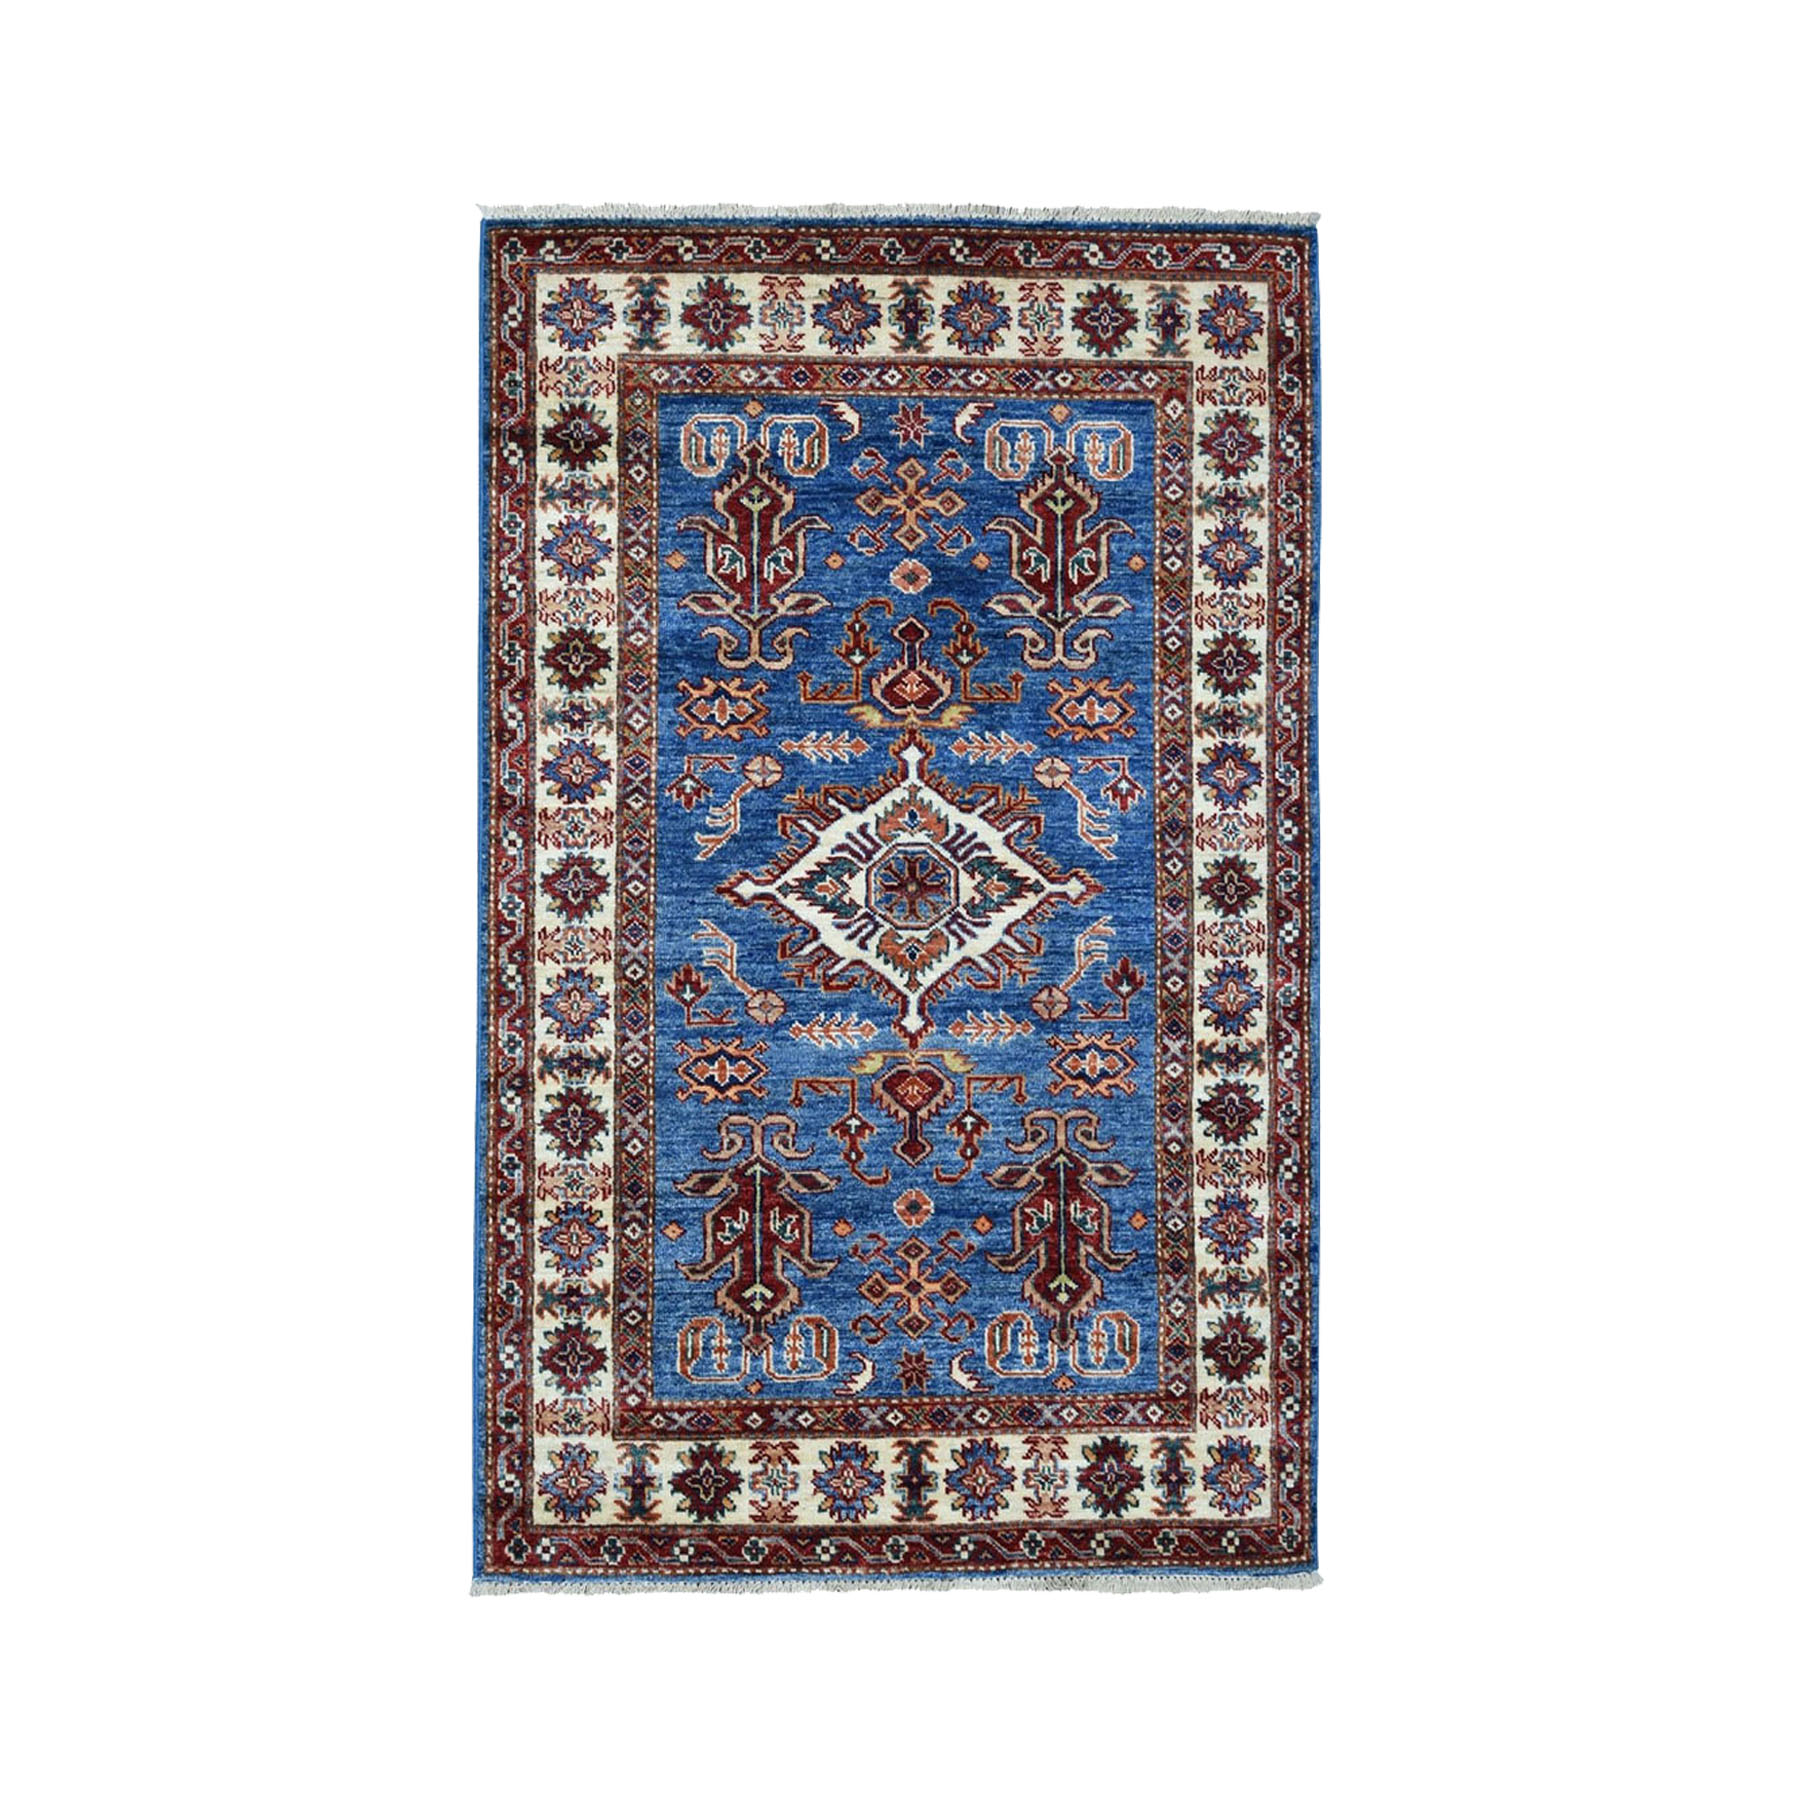 "3'2""x4'8"" Blue Super Kazak Pure Wool Geometric Design Hand-Knotted Oriental Rug"